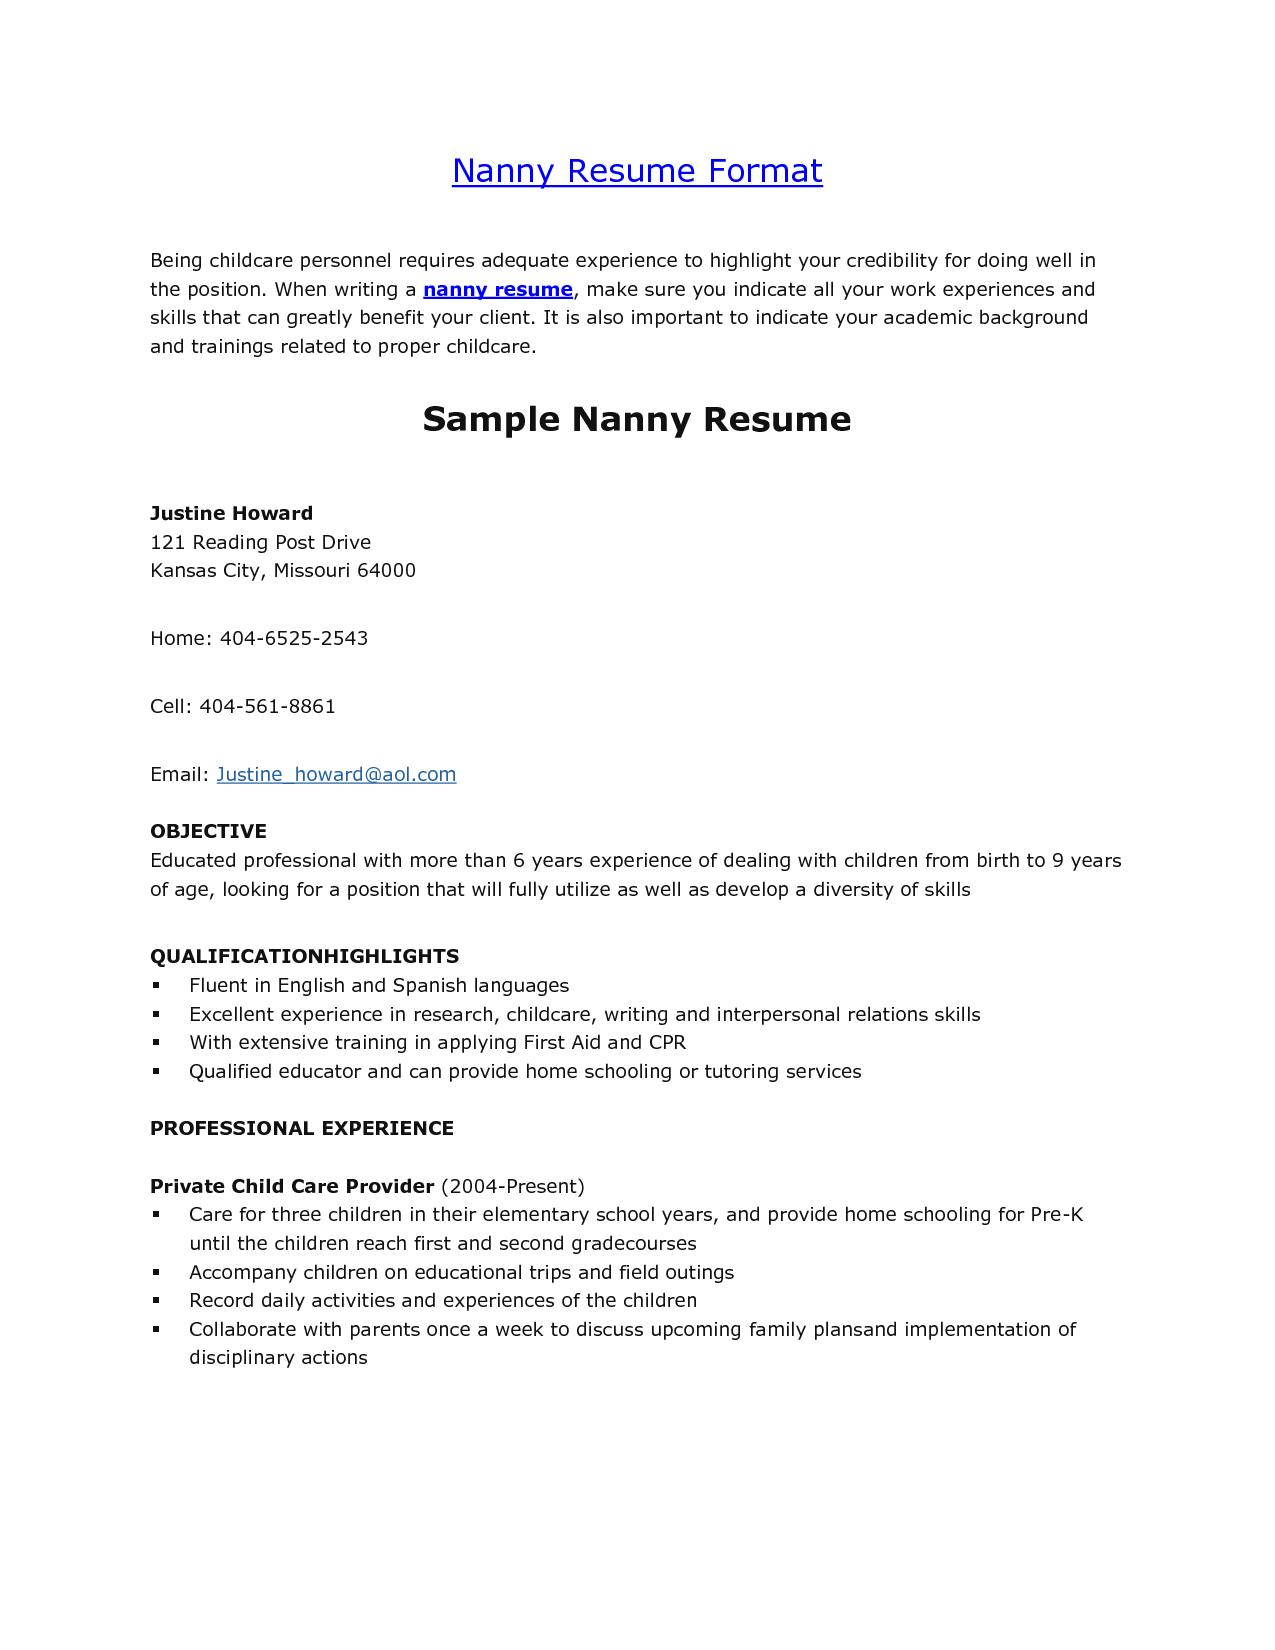 Nanny Resume Template Daway Dabrowa Co | amypark.us